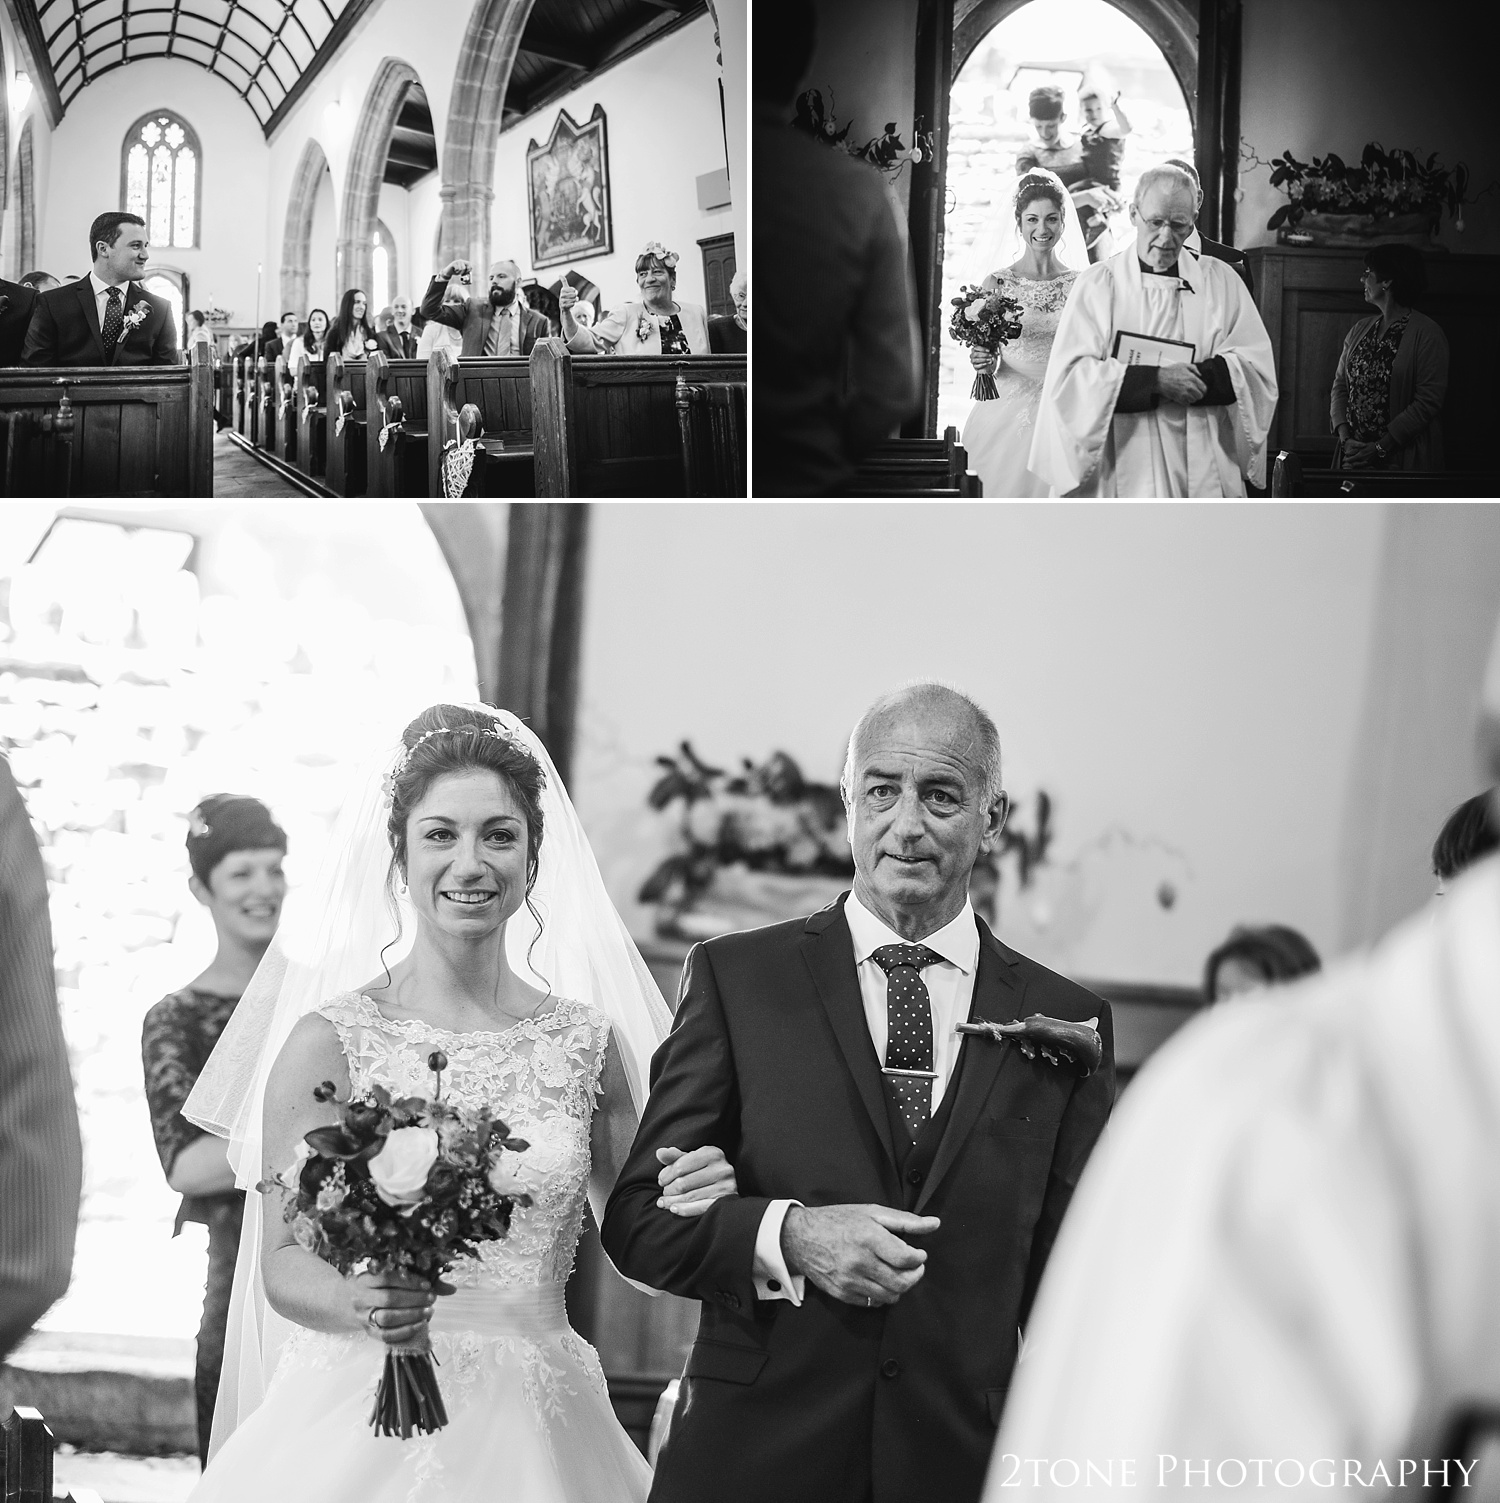 The arrival of the bride.  Wedding photography in Somerset by husband and wife team 2tone Photography ww.2tonephotography.co.uk